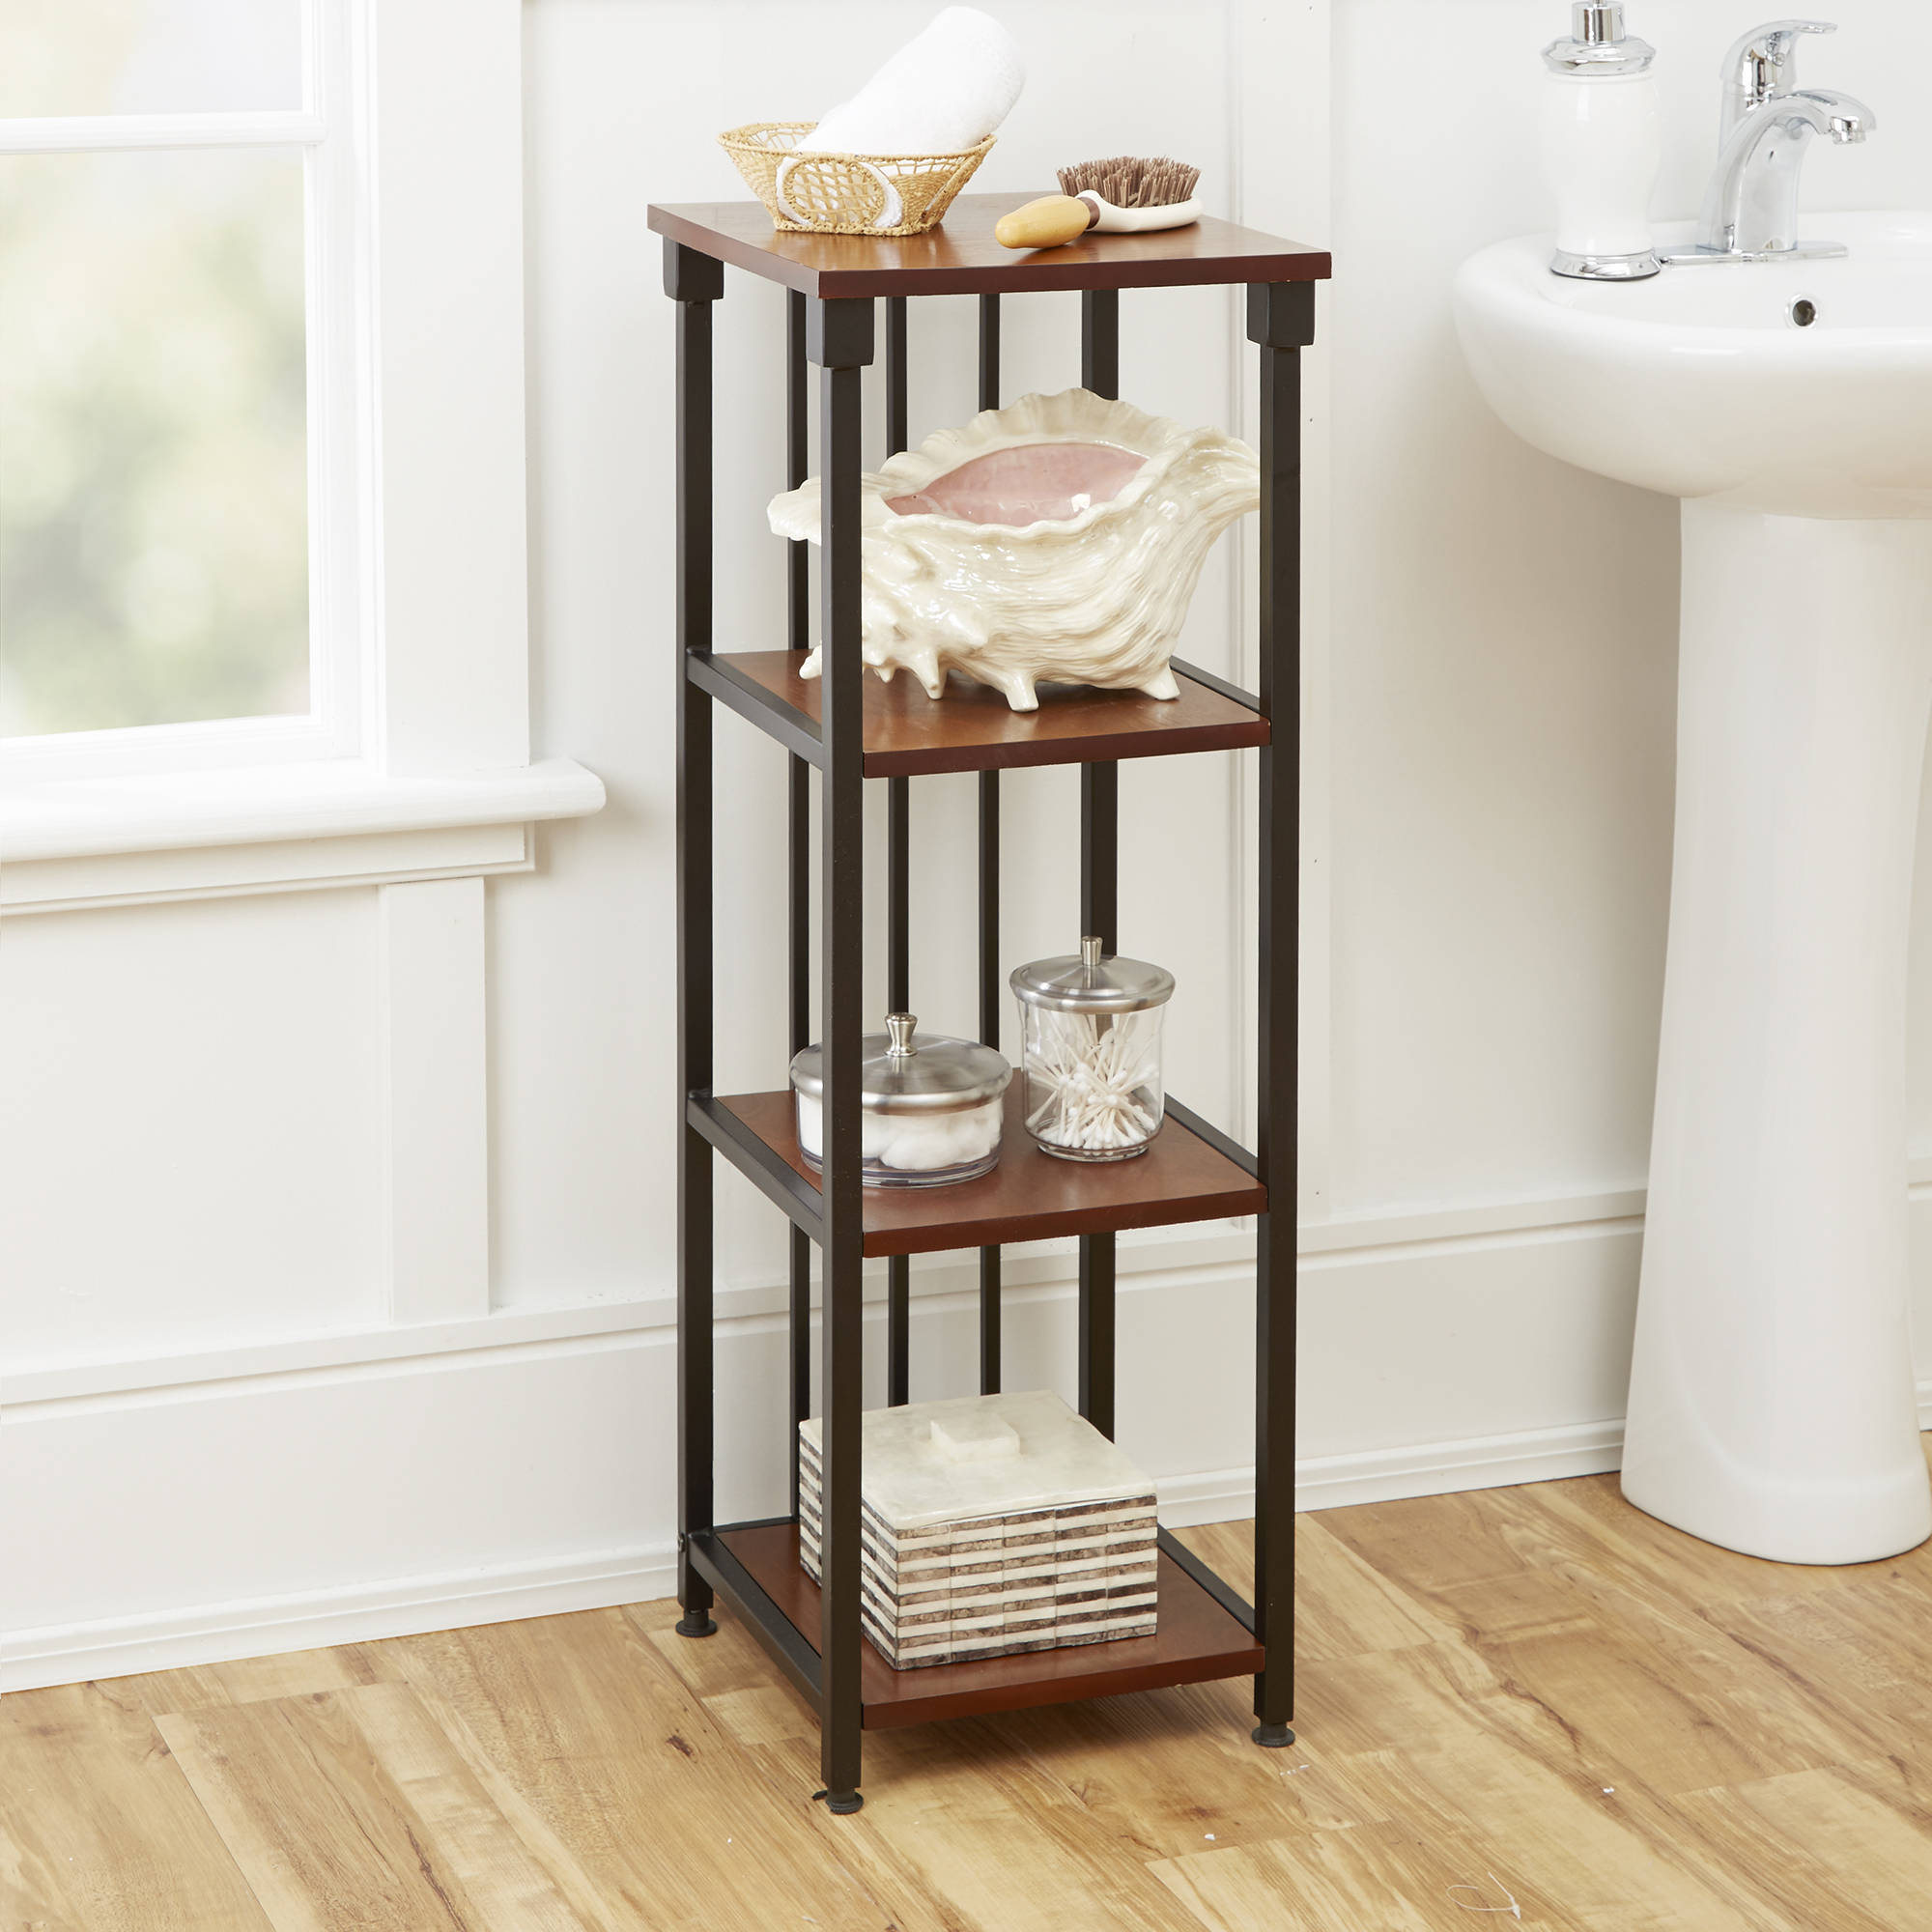 Chapter Kensington Bathroom Linen Tower - Walmart.com